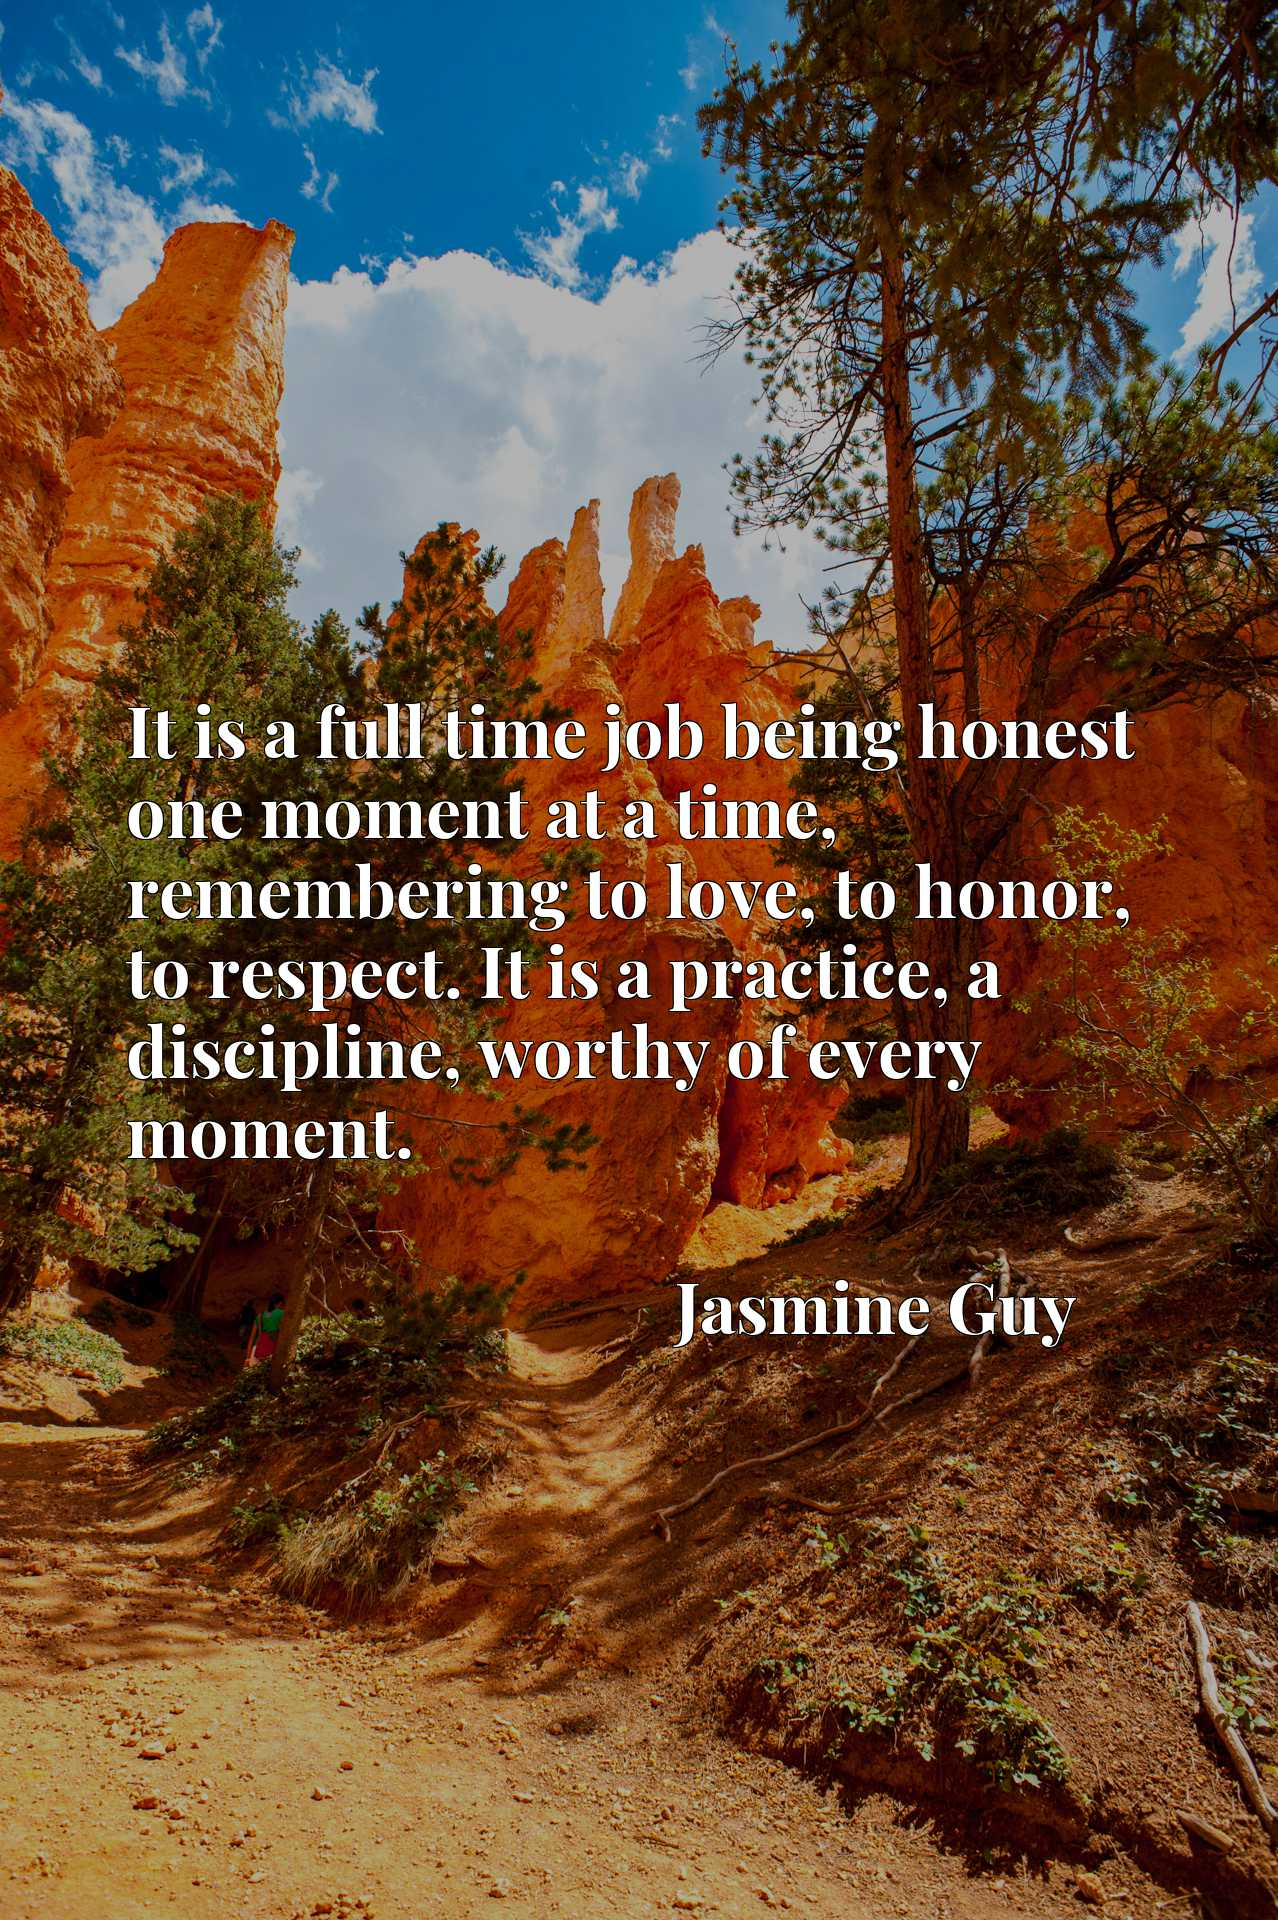 Quote Picture :It is a full time job being honest one moment at a time, remembering to love, to honor, to respect. It is a practice, a discipline, worthy of every moment.